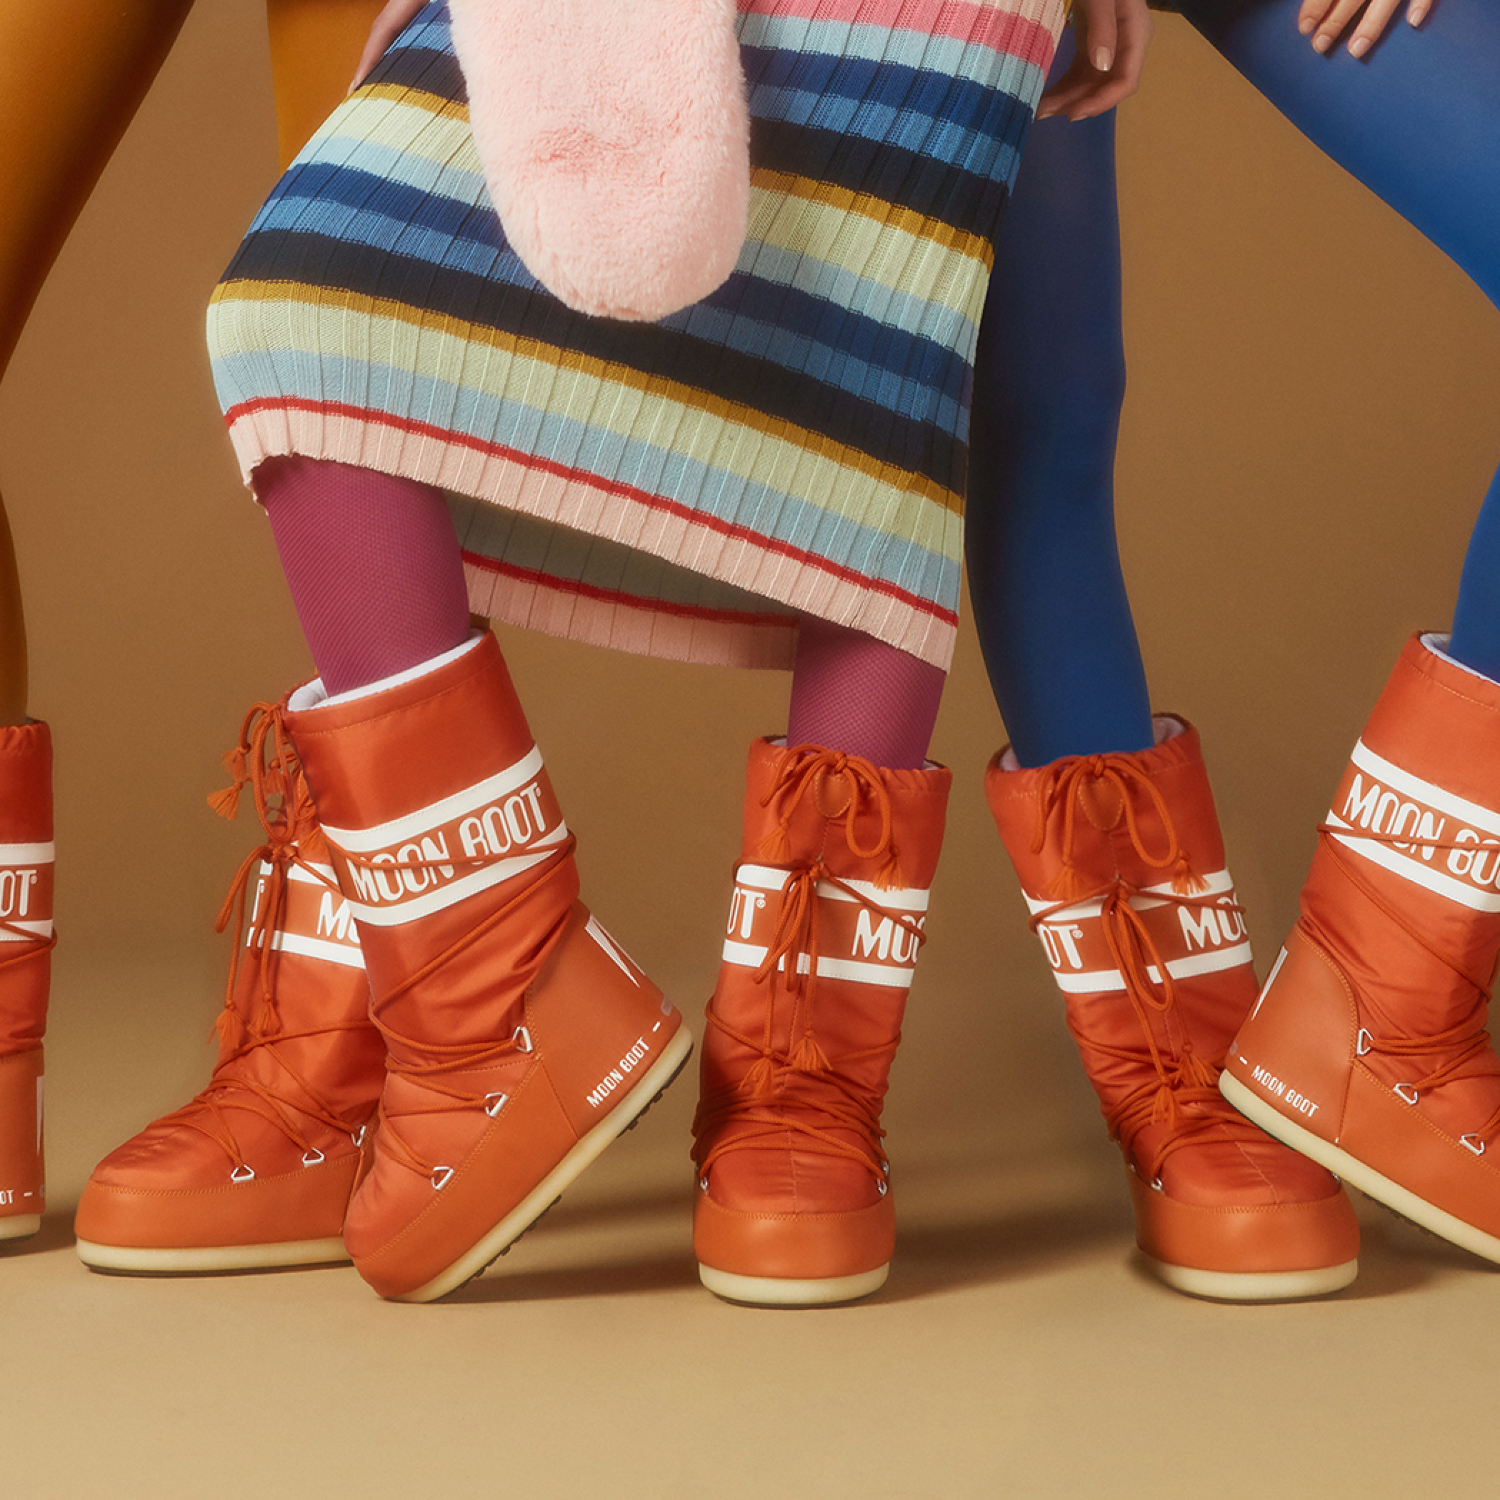 Brand Focus: Moon Boot